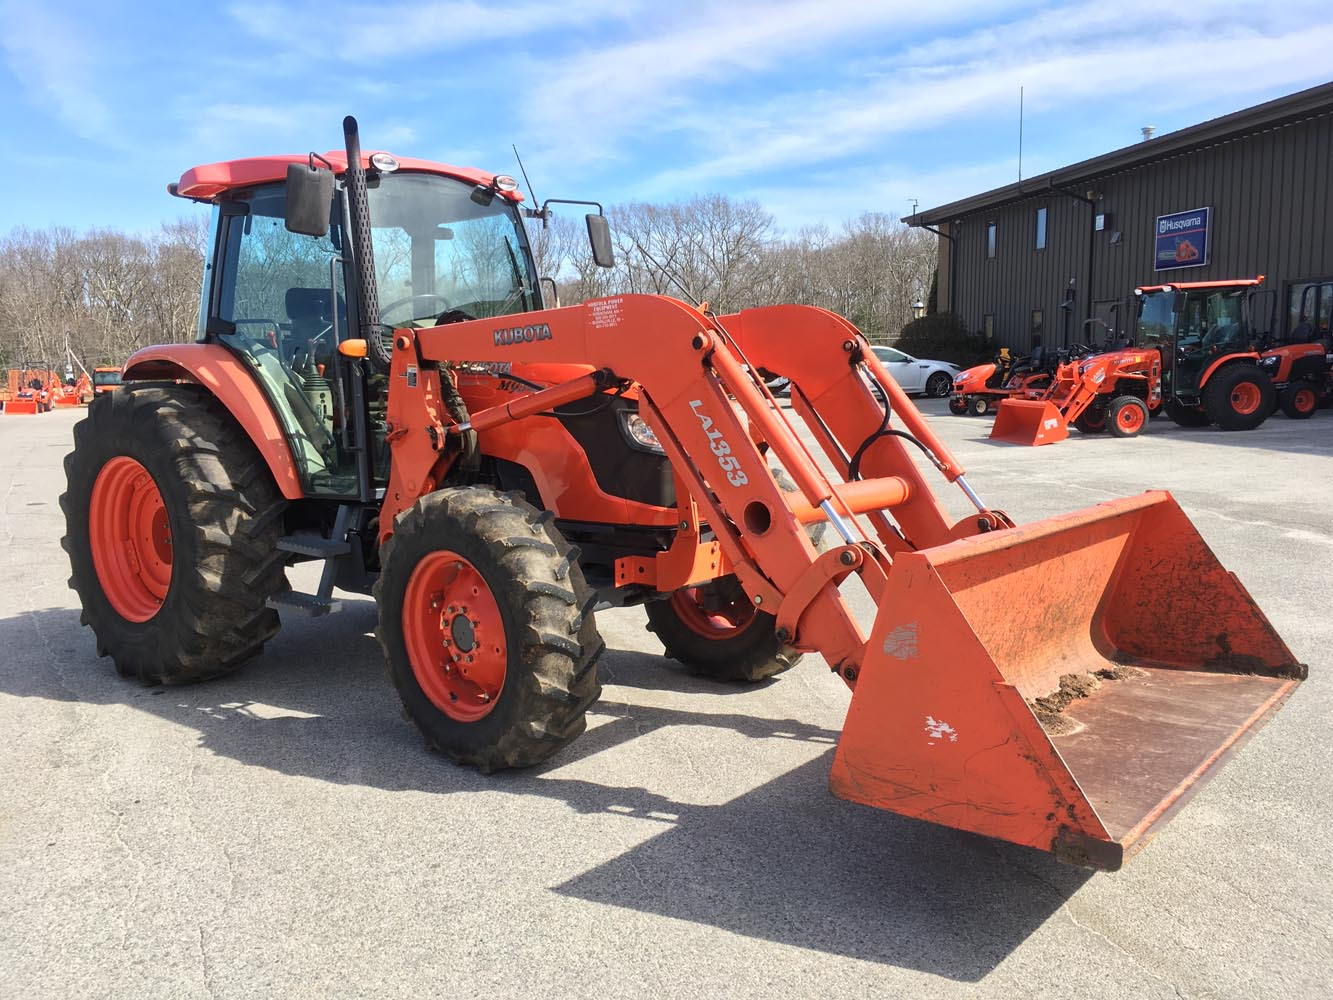 2010 Kubota M9540 Deluxe Utility Tractor for sale in Burrillville